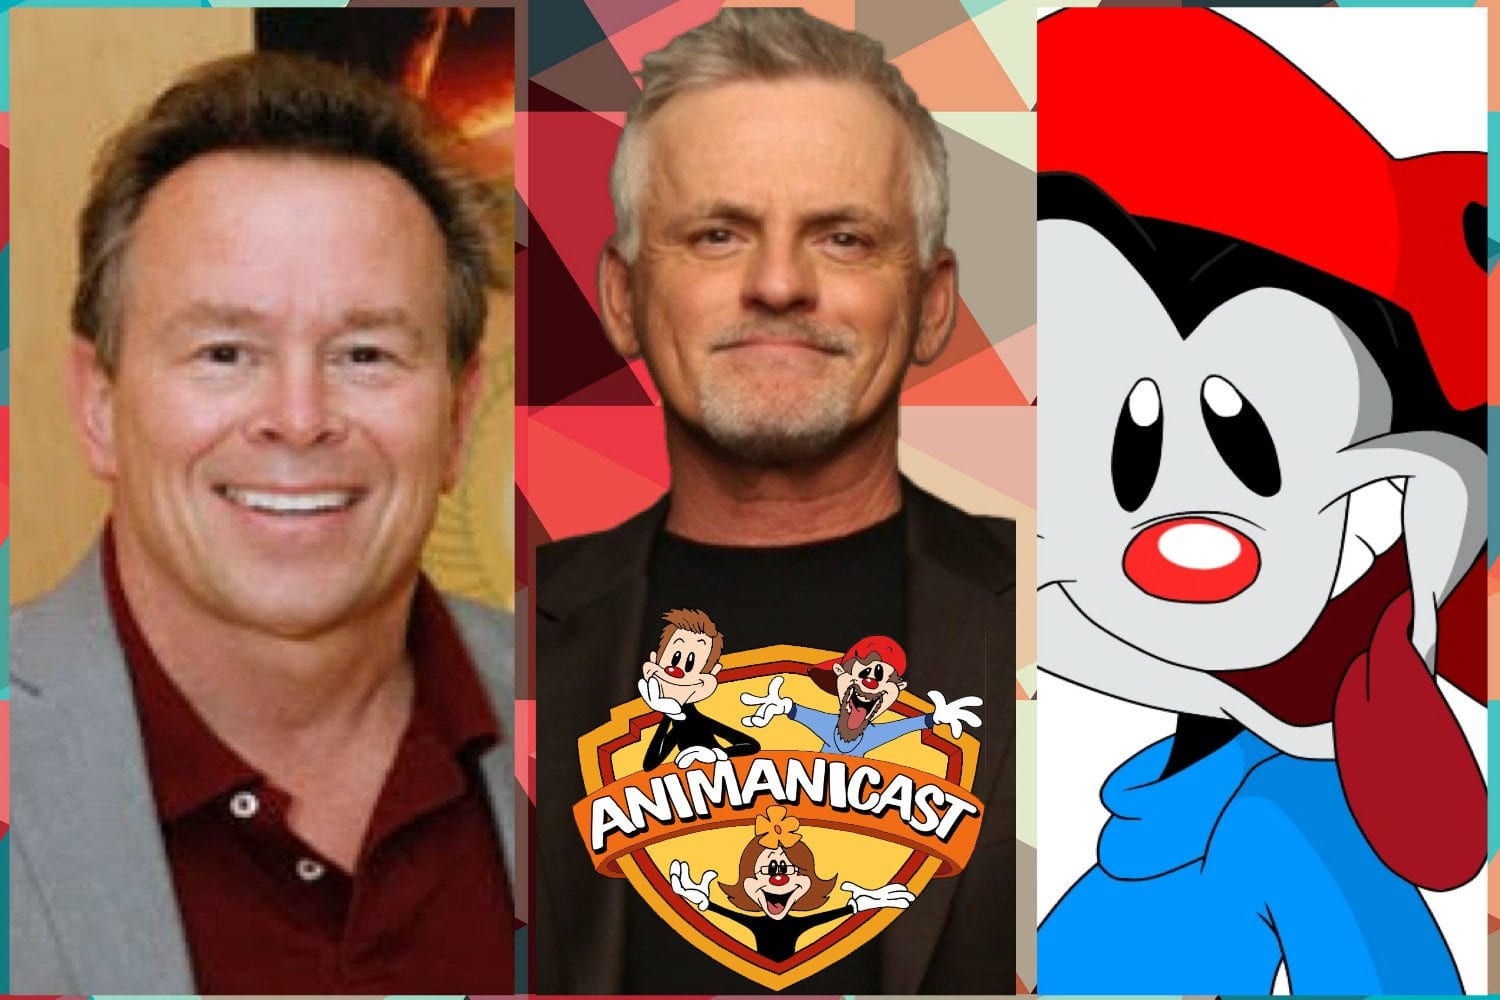 Animanicast #63a with Animaniacs Creator Tom Ruegger Feat. Rob Paulsen's Audition as Wakko and an Animaniacs Reboot Discussion